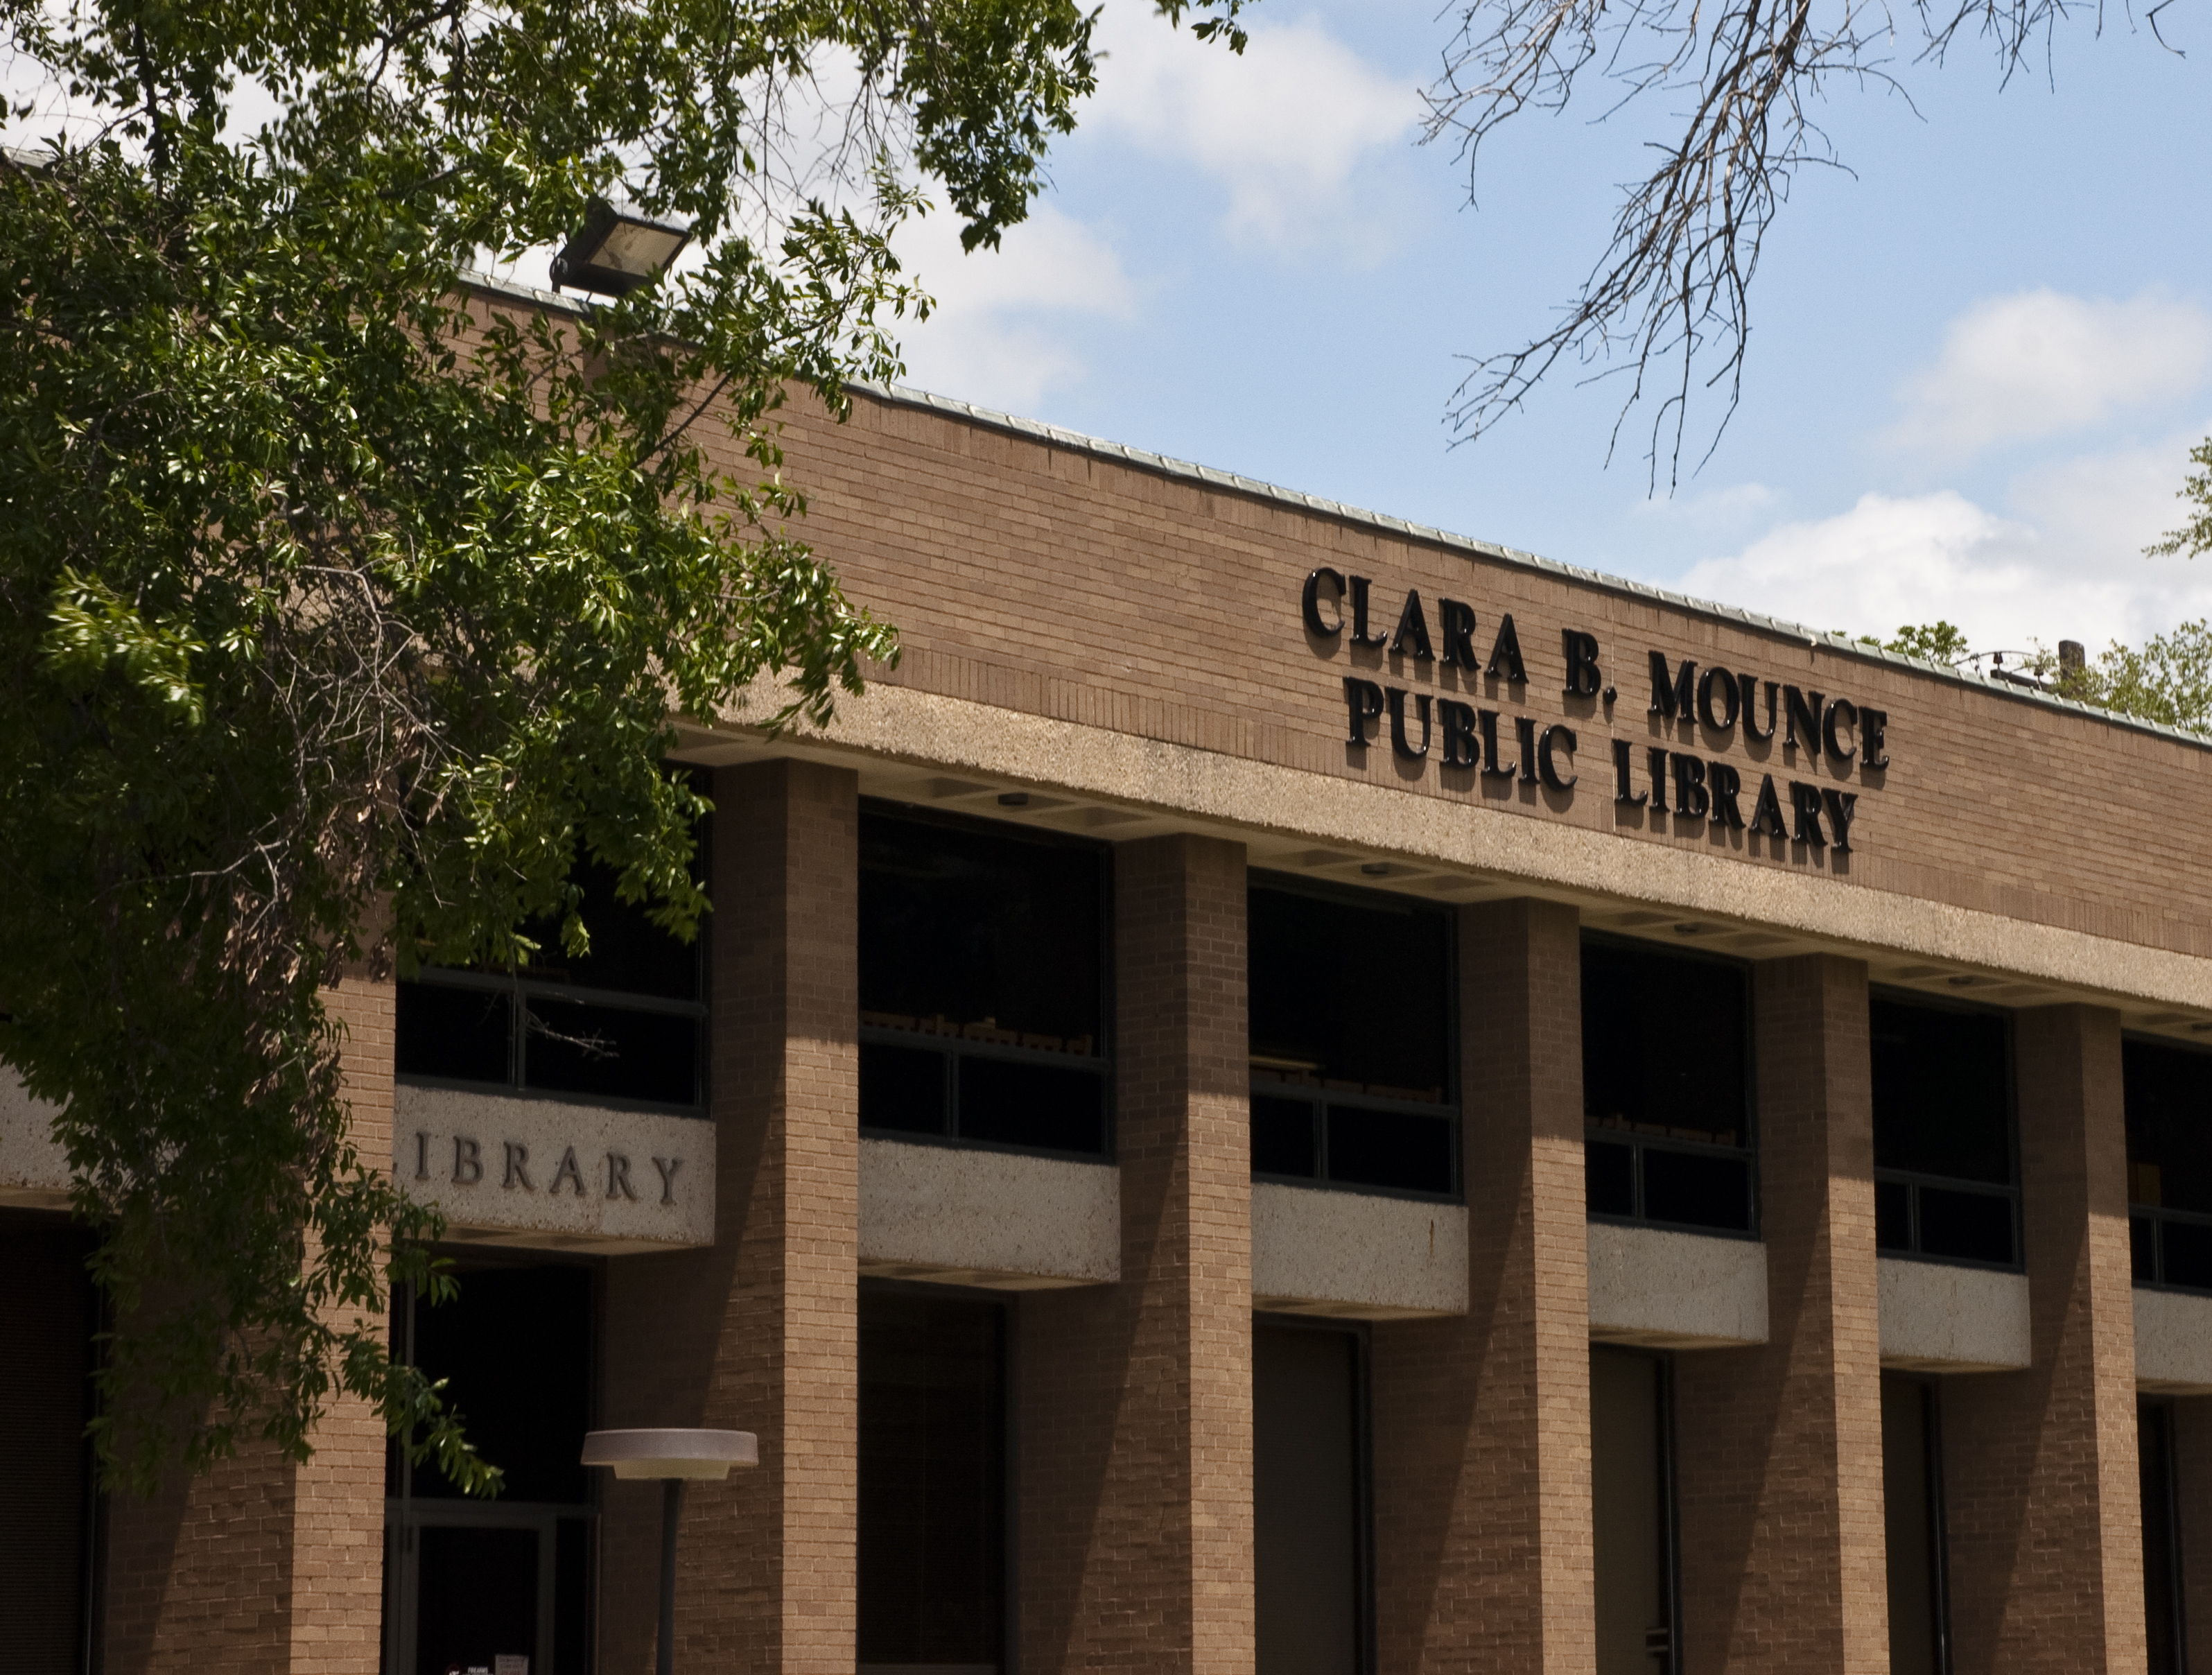 Clara B. Mounce Public Library Offers Free Homework Assistance